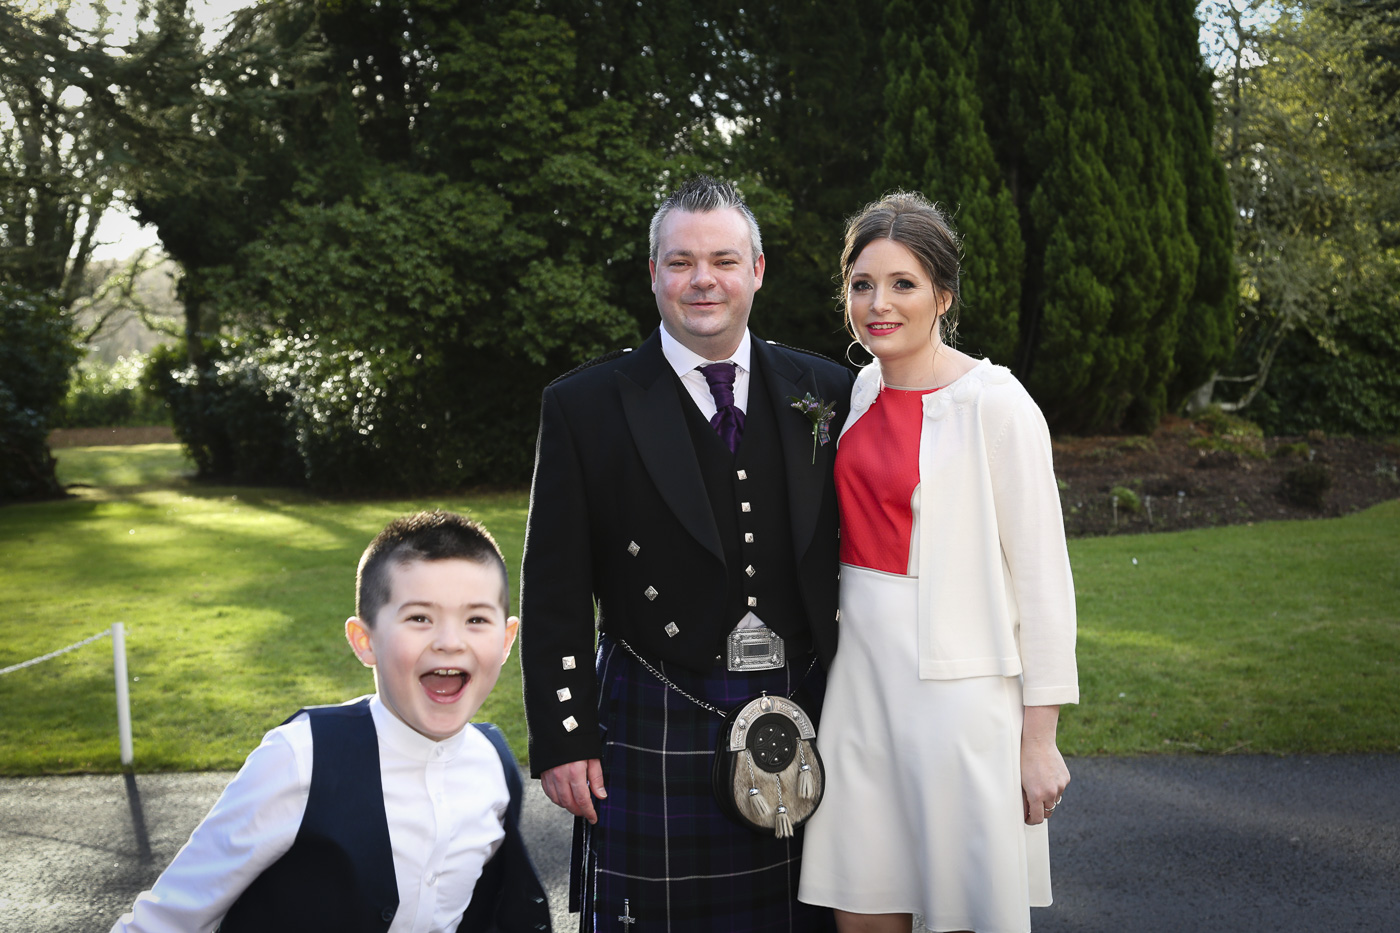 wedding-photography-at-bunchrew-house-inverness-8776